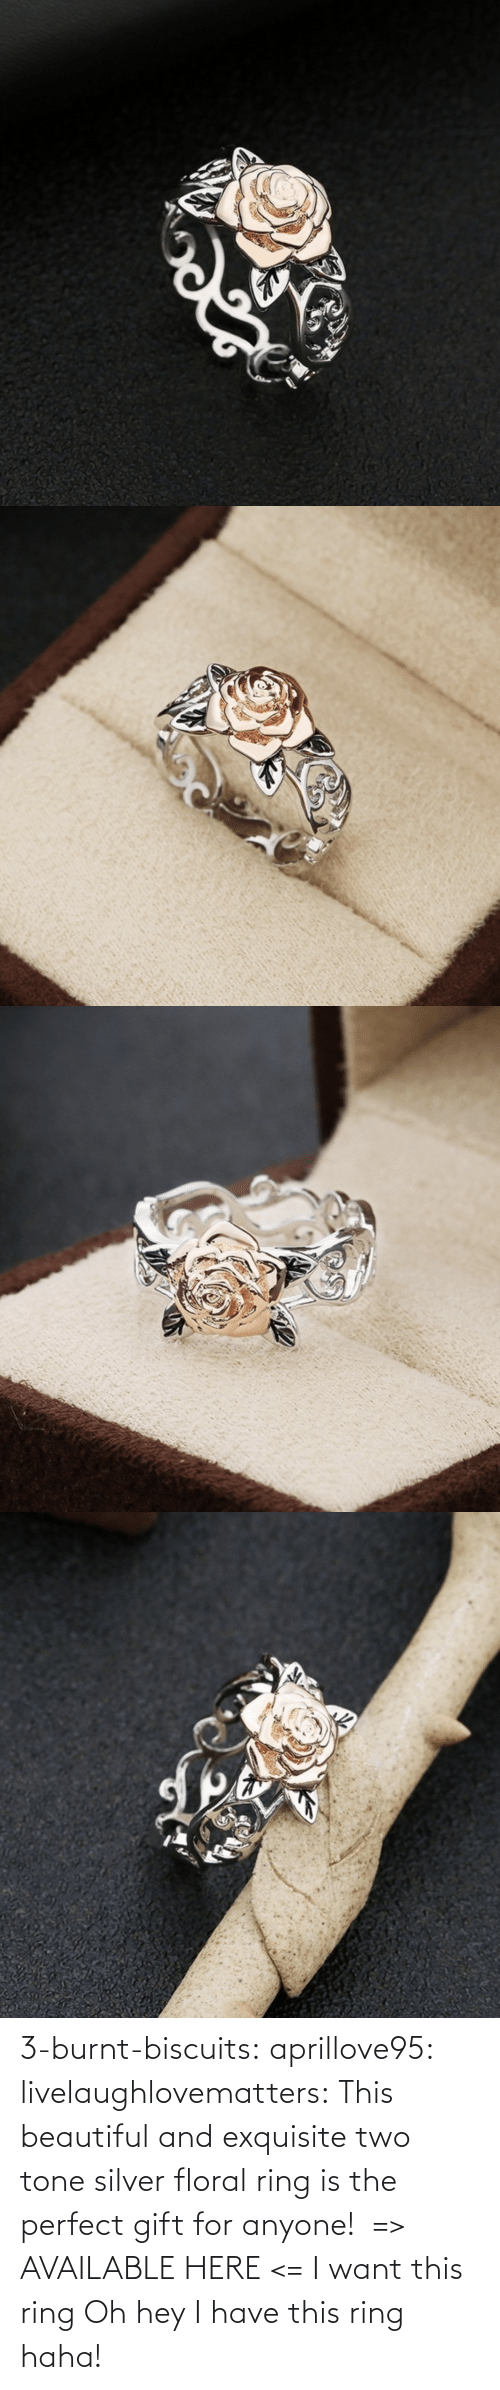 Oh Hey: 3-burnt-biscuits: aprillove95:  livelaughlovematters:  This beautiful and exquisite two tone silver floral ring is the perfect gift for anyone! => AVAILABLE HERE <=    I want this ring     Oh hey I have this ring haha!